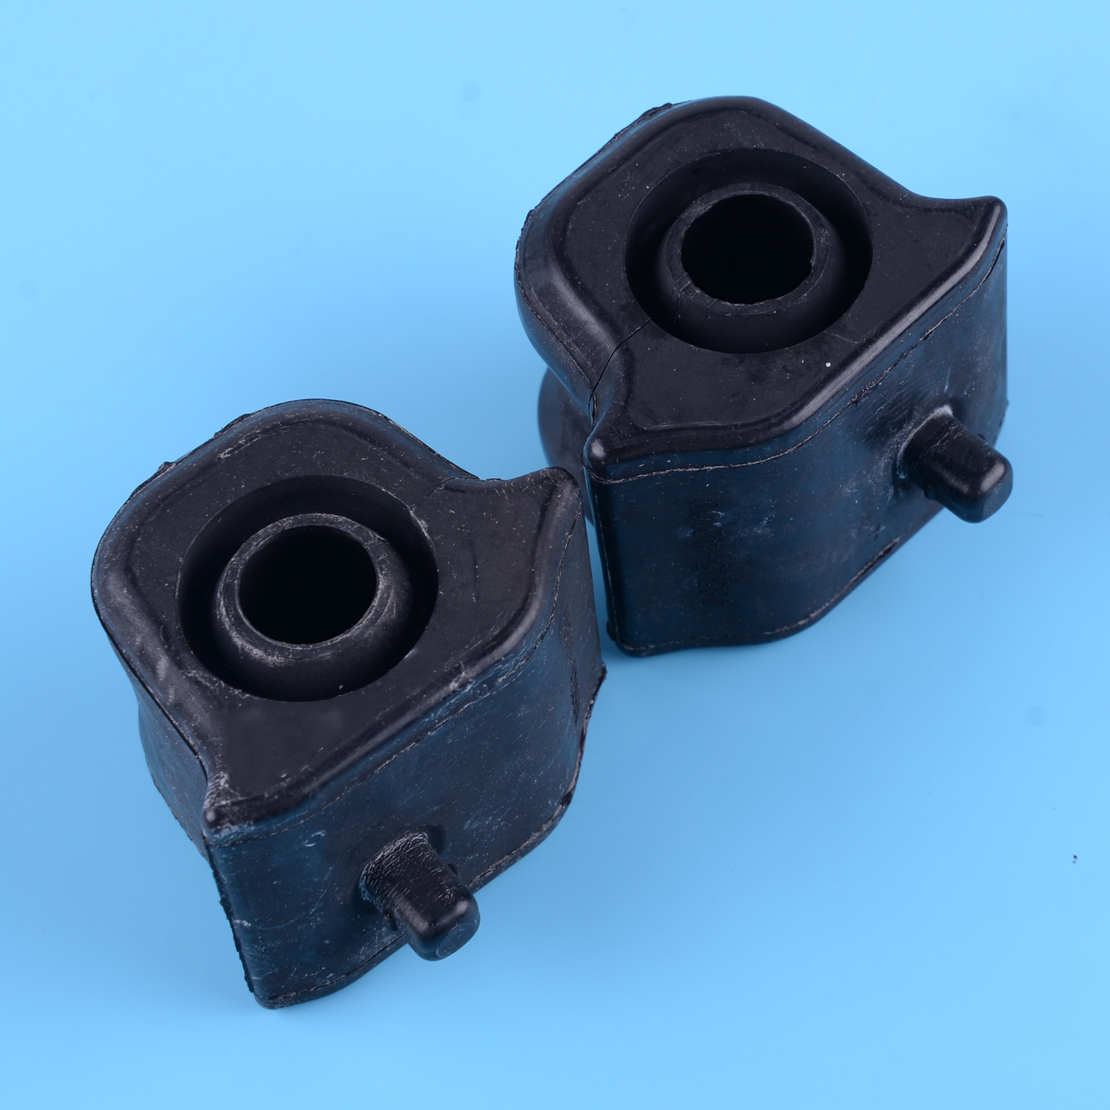 DWCX 2pcs Left & Right Car Front Suspension Stabilizer Bar Bushing 48815-42090 48815-42100 Fit For Toyota RAV4 2006-2012